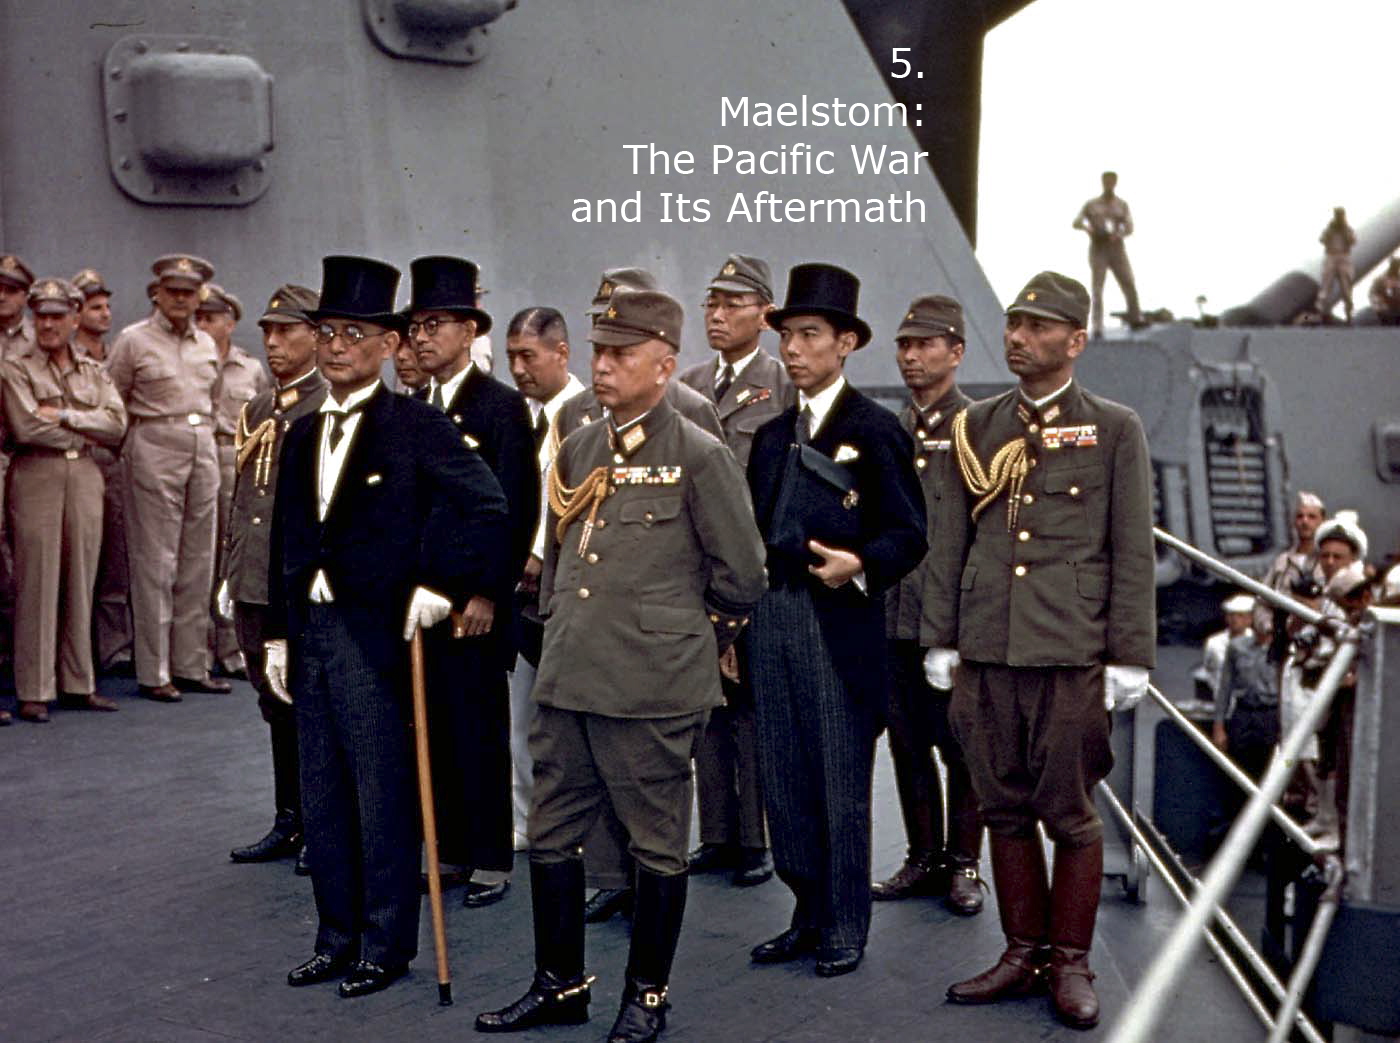 5. The Pacific War & Aftermath